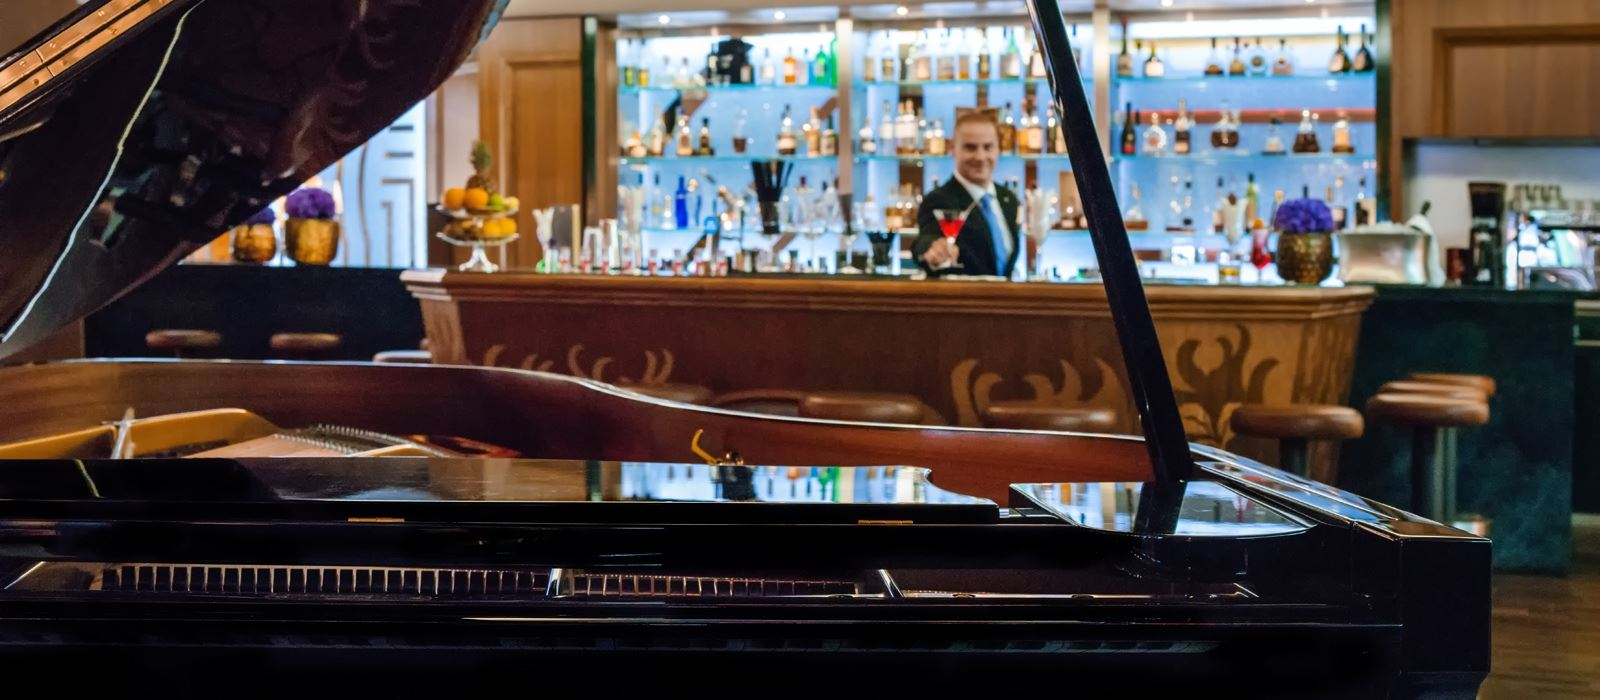 06_Tschuggen Grand Hotel_Restaurant_Bar